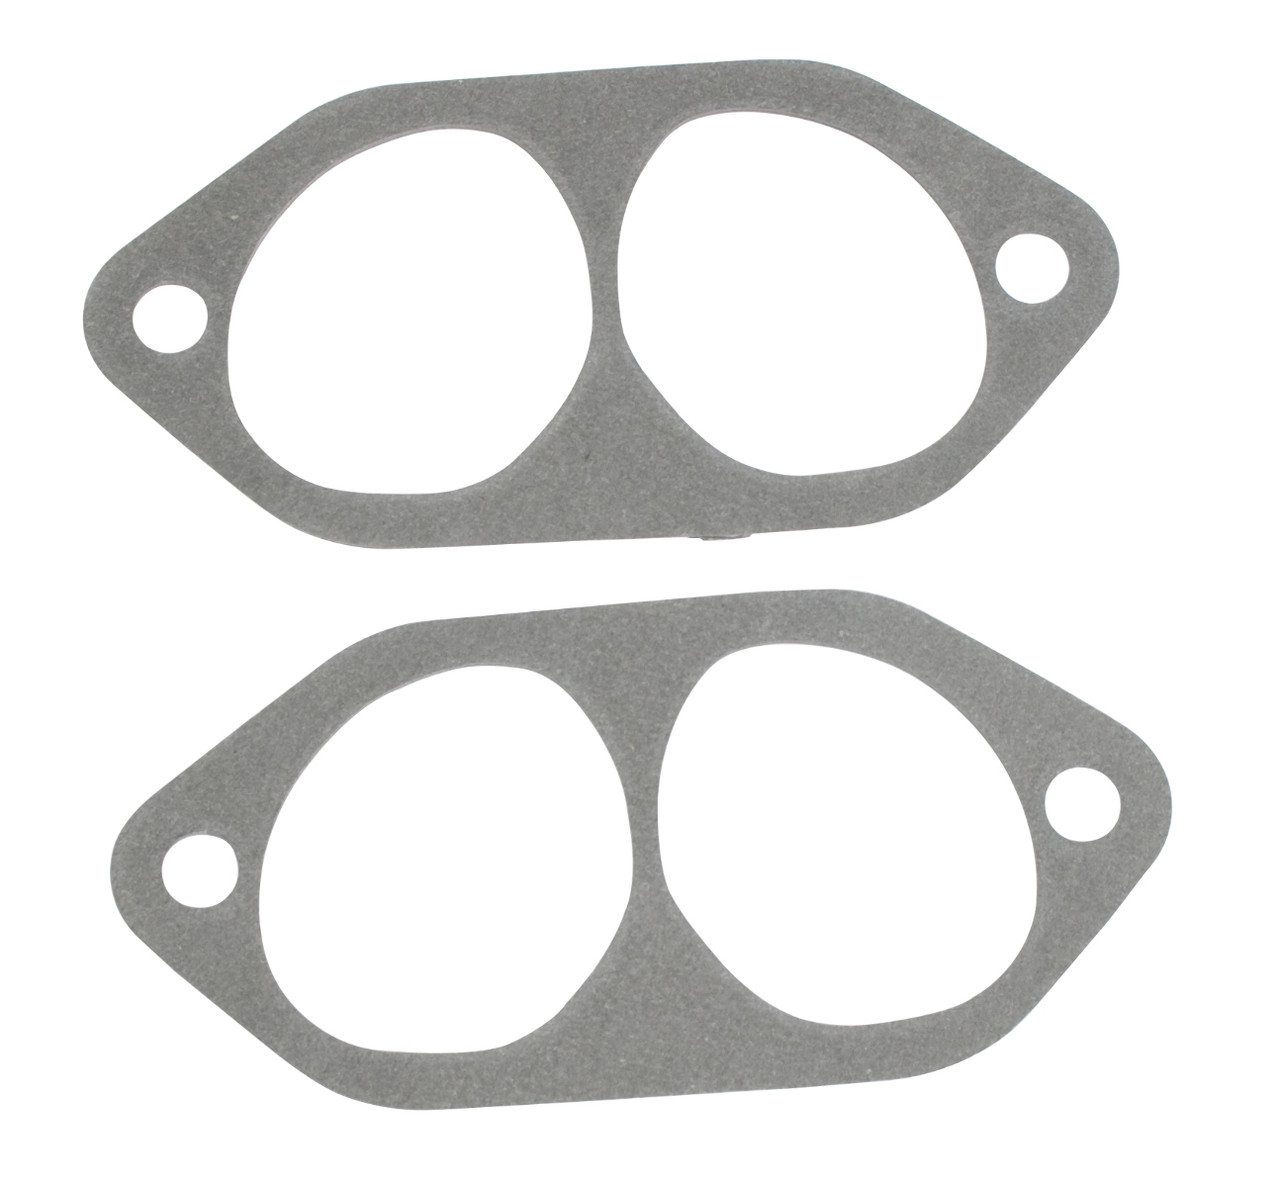 D7000  Intake Gaskets, Pair, For EMPI GTV-2 D7000 Cylinder Heads